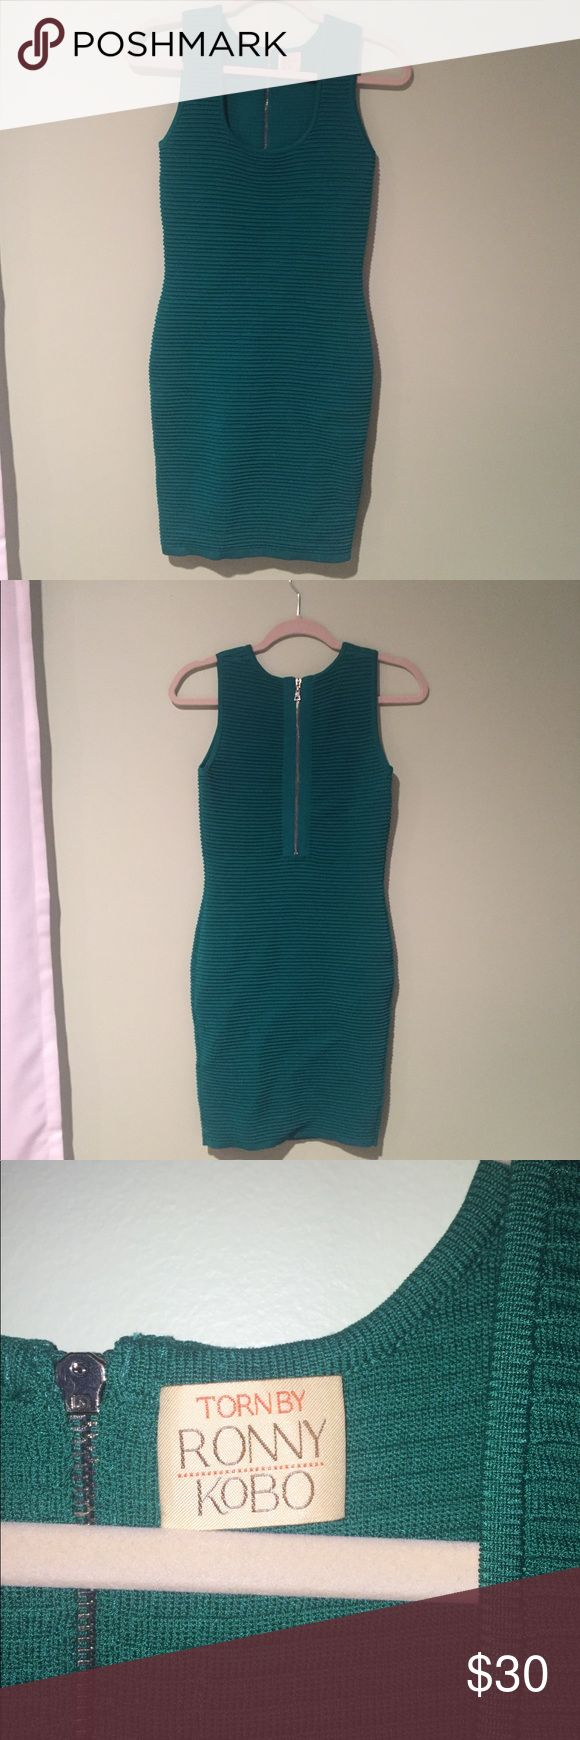 Torn by Ronny Kobo Emerald Green Bodycon Dress Beautiful emerald green bodycon dress with thick ribbed elastic fabric. Super stretchy and sturdy. Flattering to all bodies. Zip up back. Tag doesn't say, but about a size 2. Brand is Torn by Ronny Kobo. In amazing condition: Torn by Ronny Kobo Dresses Midi